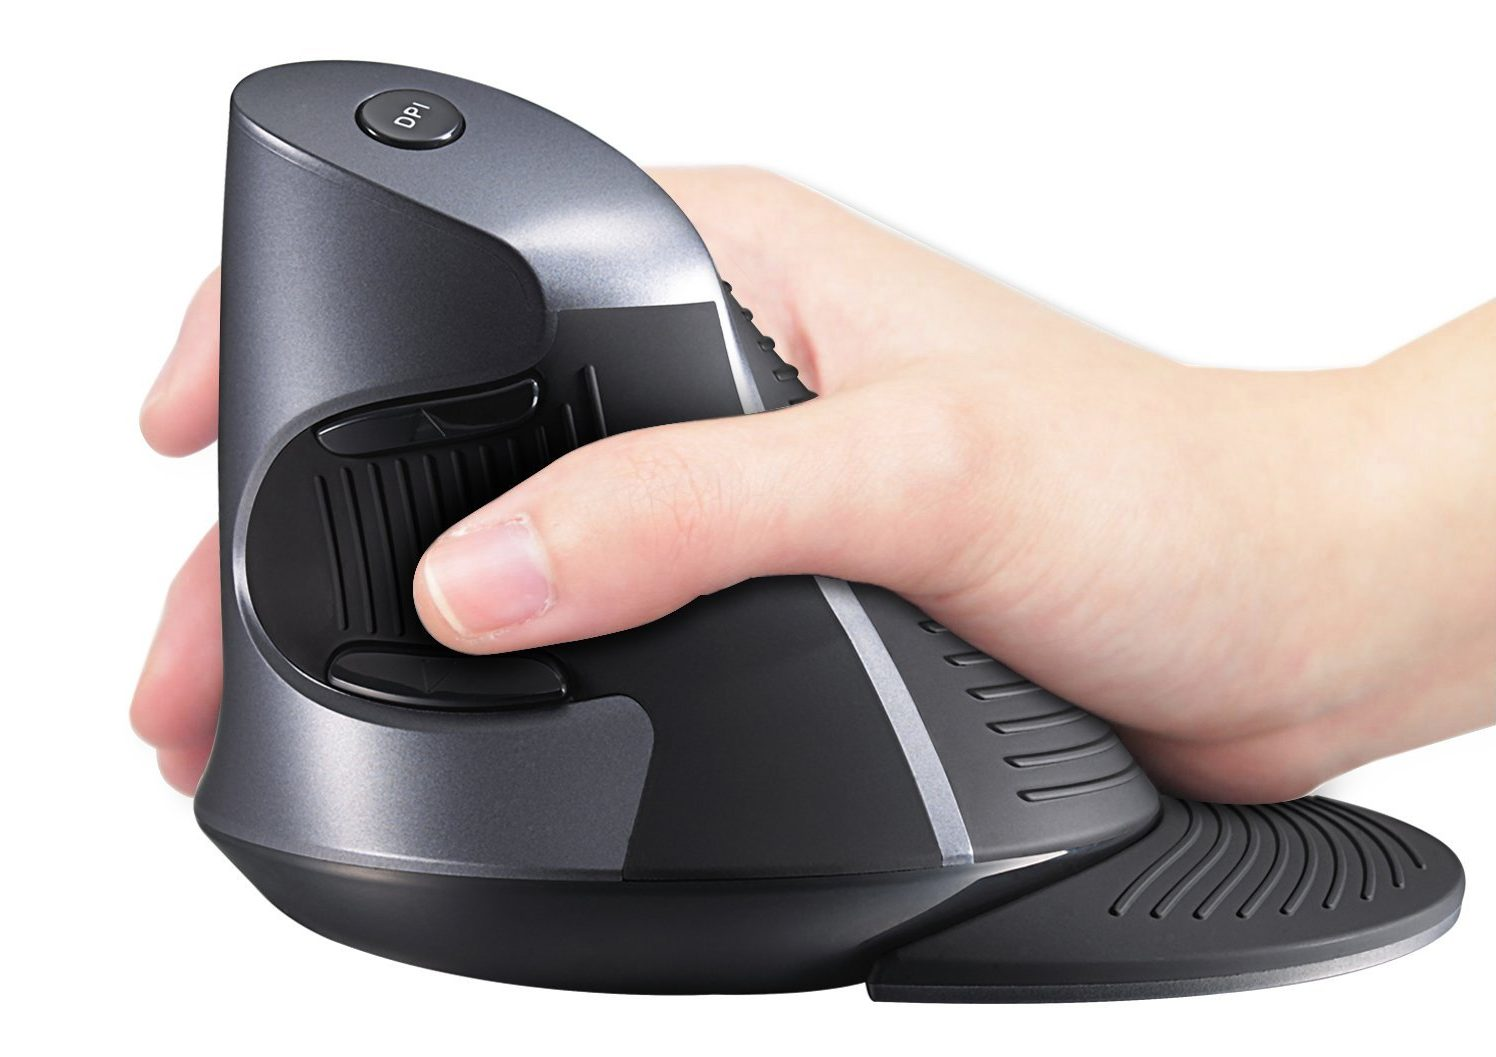 Review: IXCC Wireless Vertical Mouse